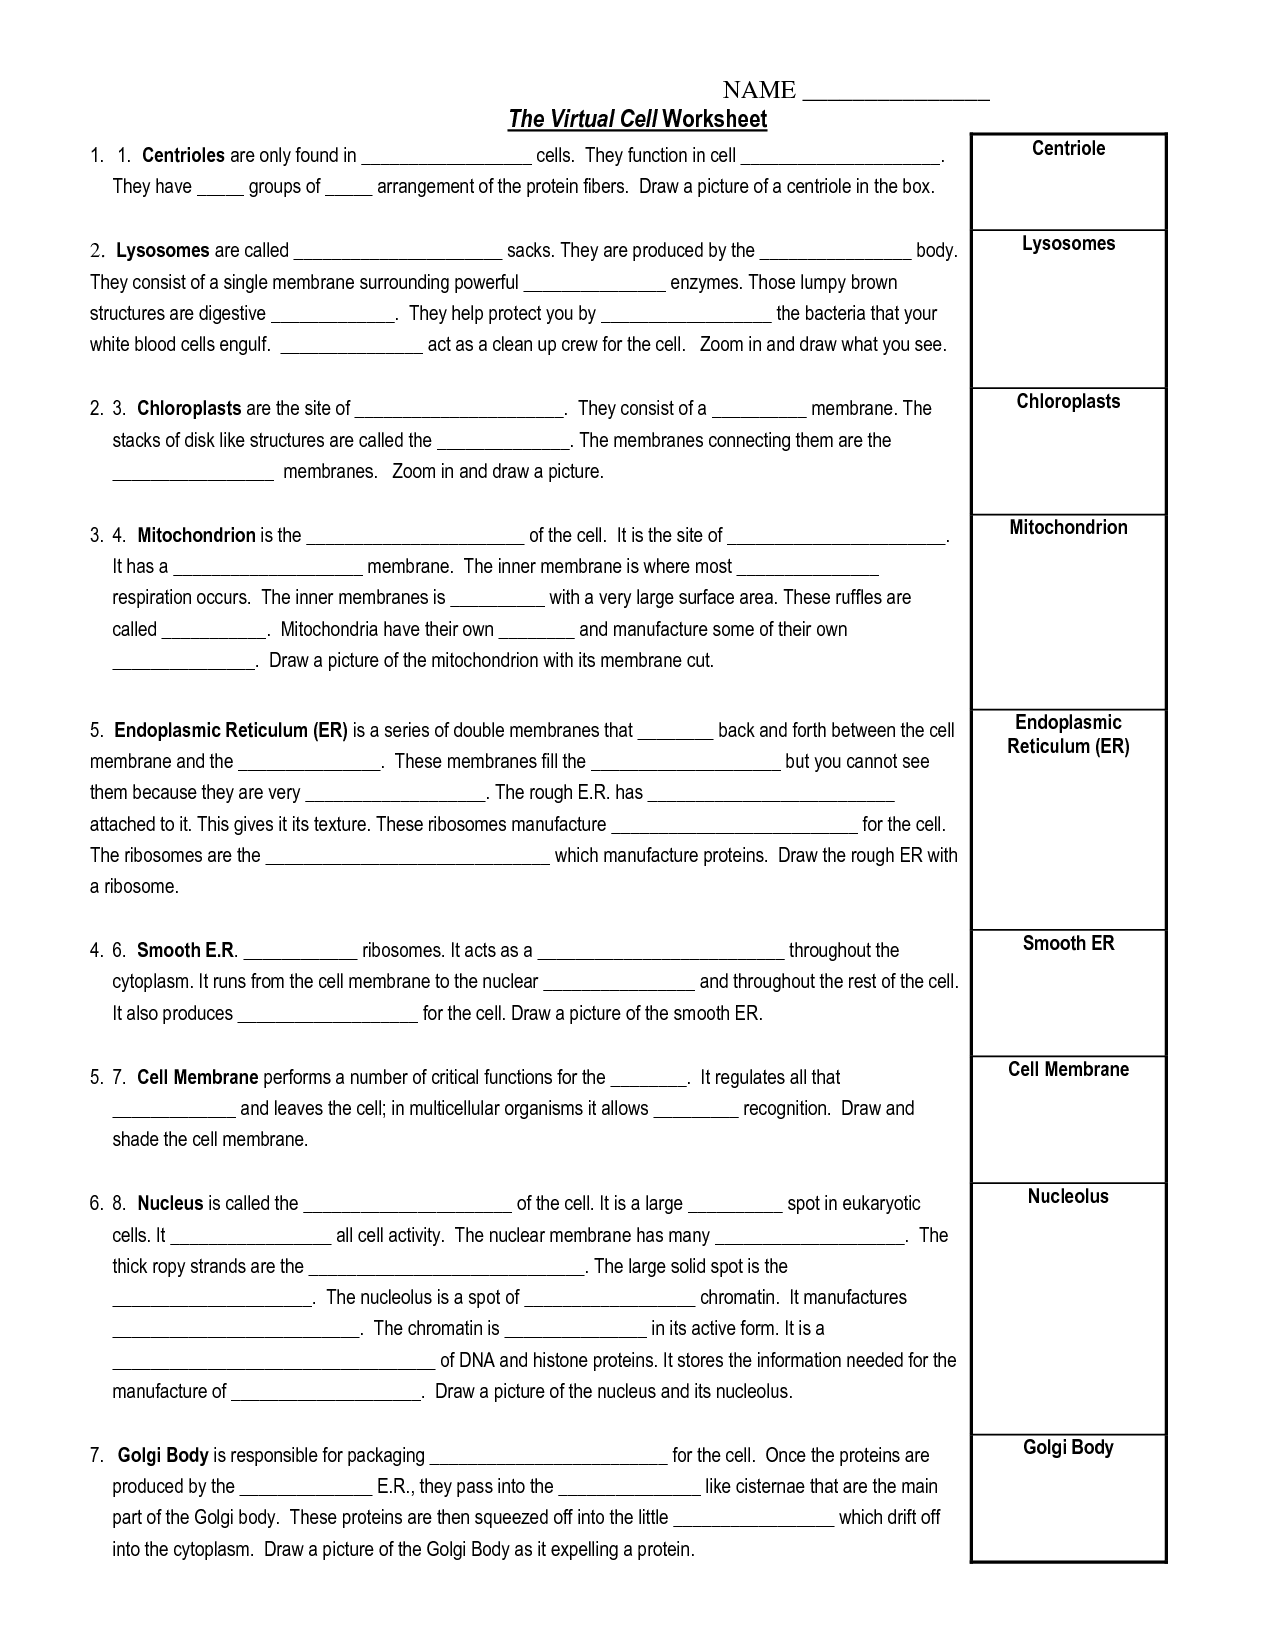 15 Best Images Of Cell Organelles Worksheet With Answers